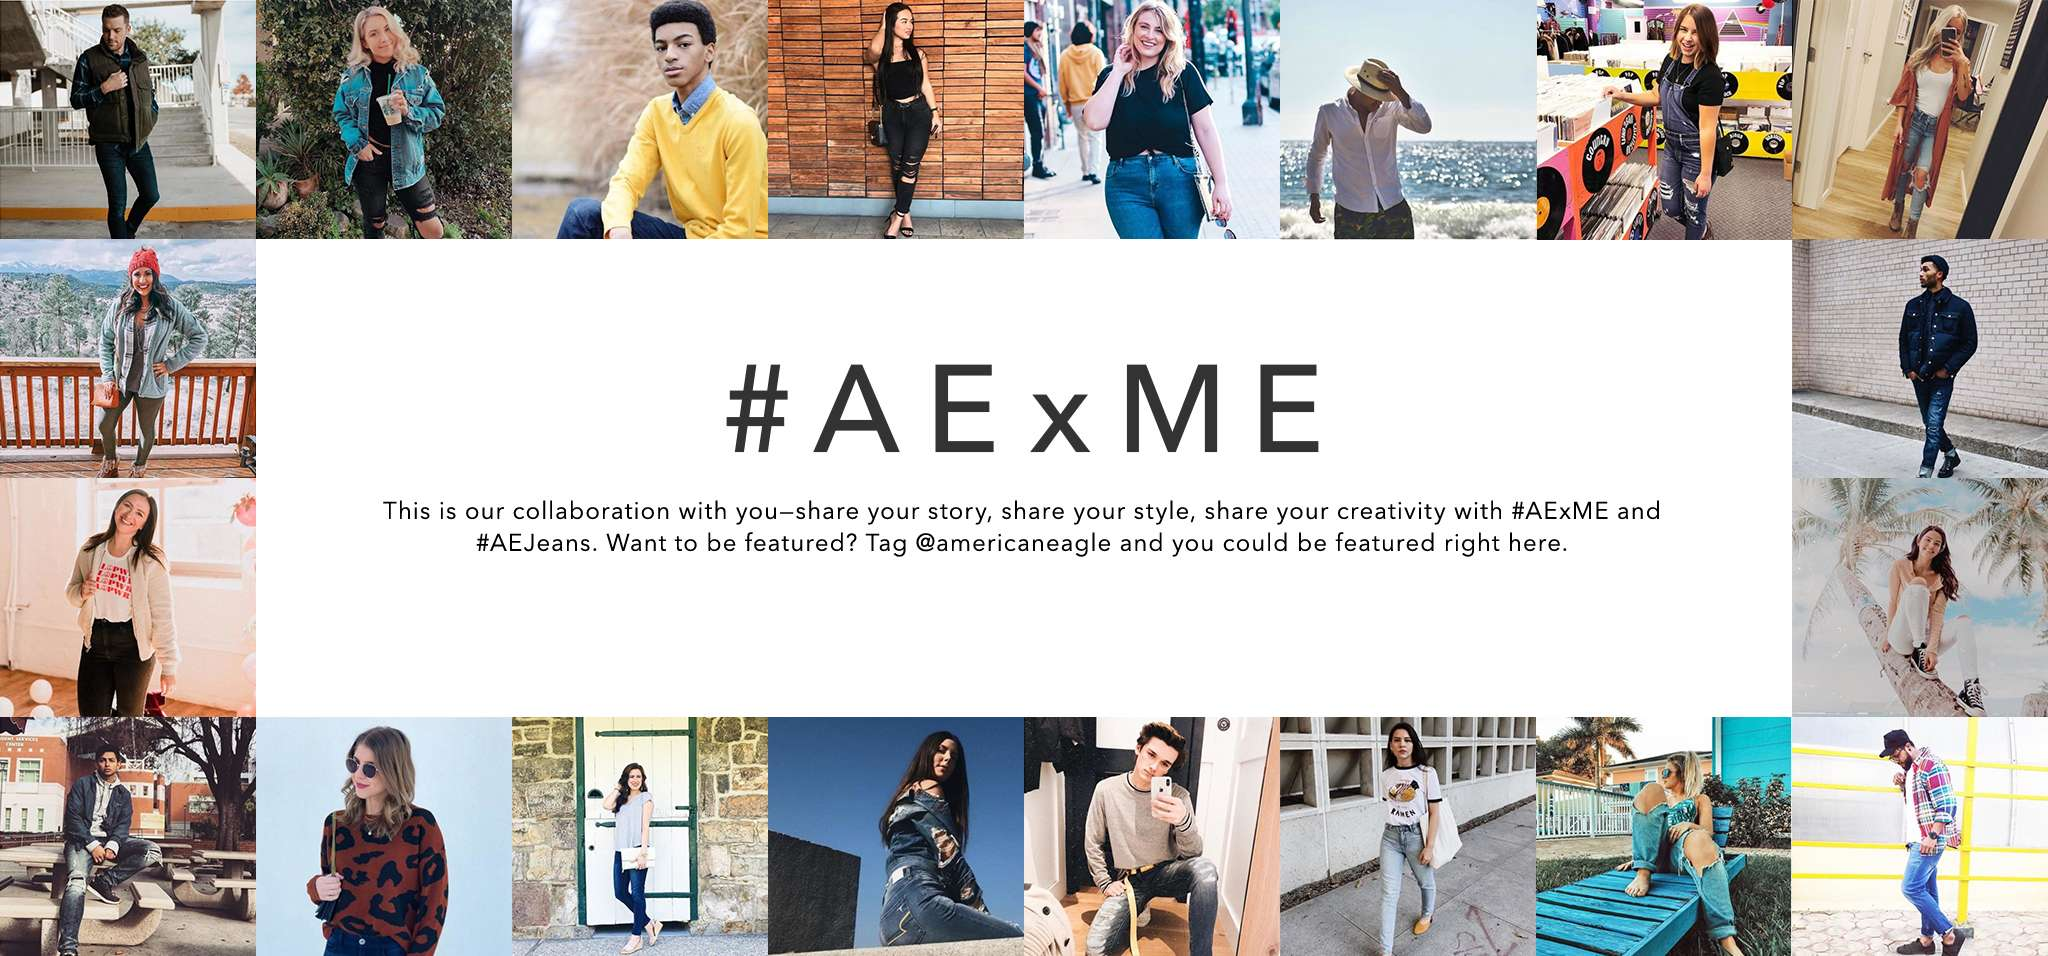 AE x me this is our collaboration with you